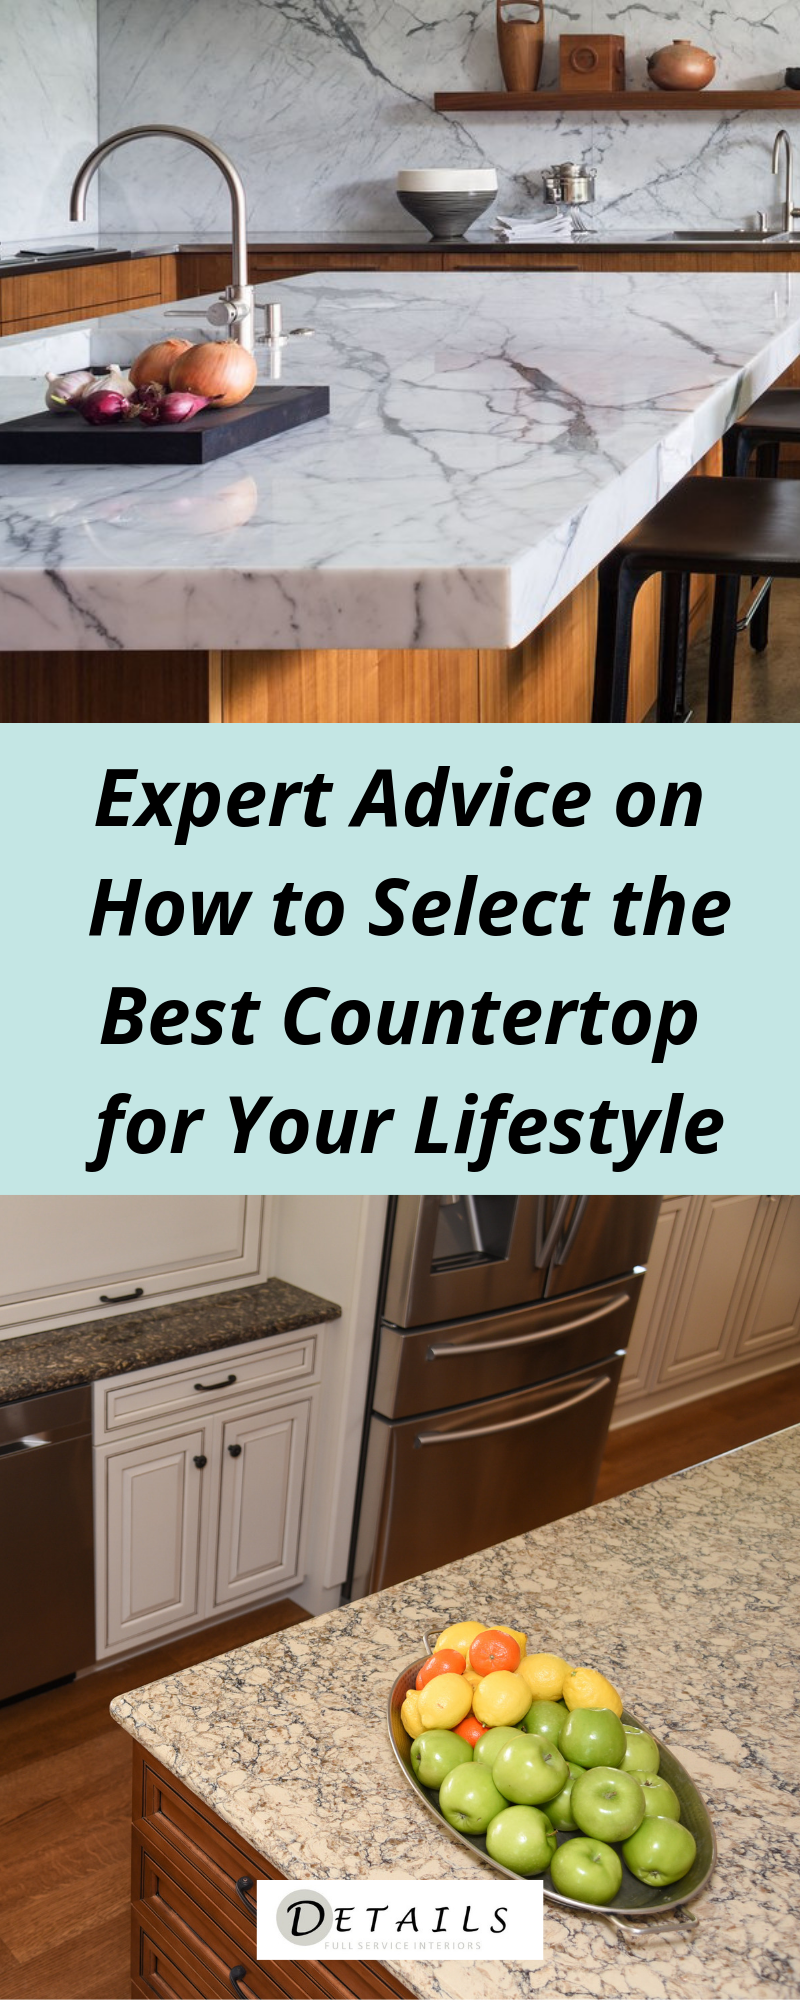 Expert Advice On How To Select The Best Countertop For Your Lifestyle Countertops Timeless Kitchen Kitchen Remodel